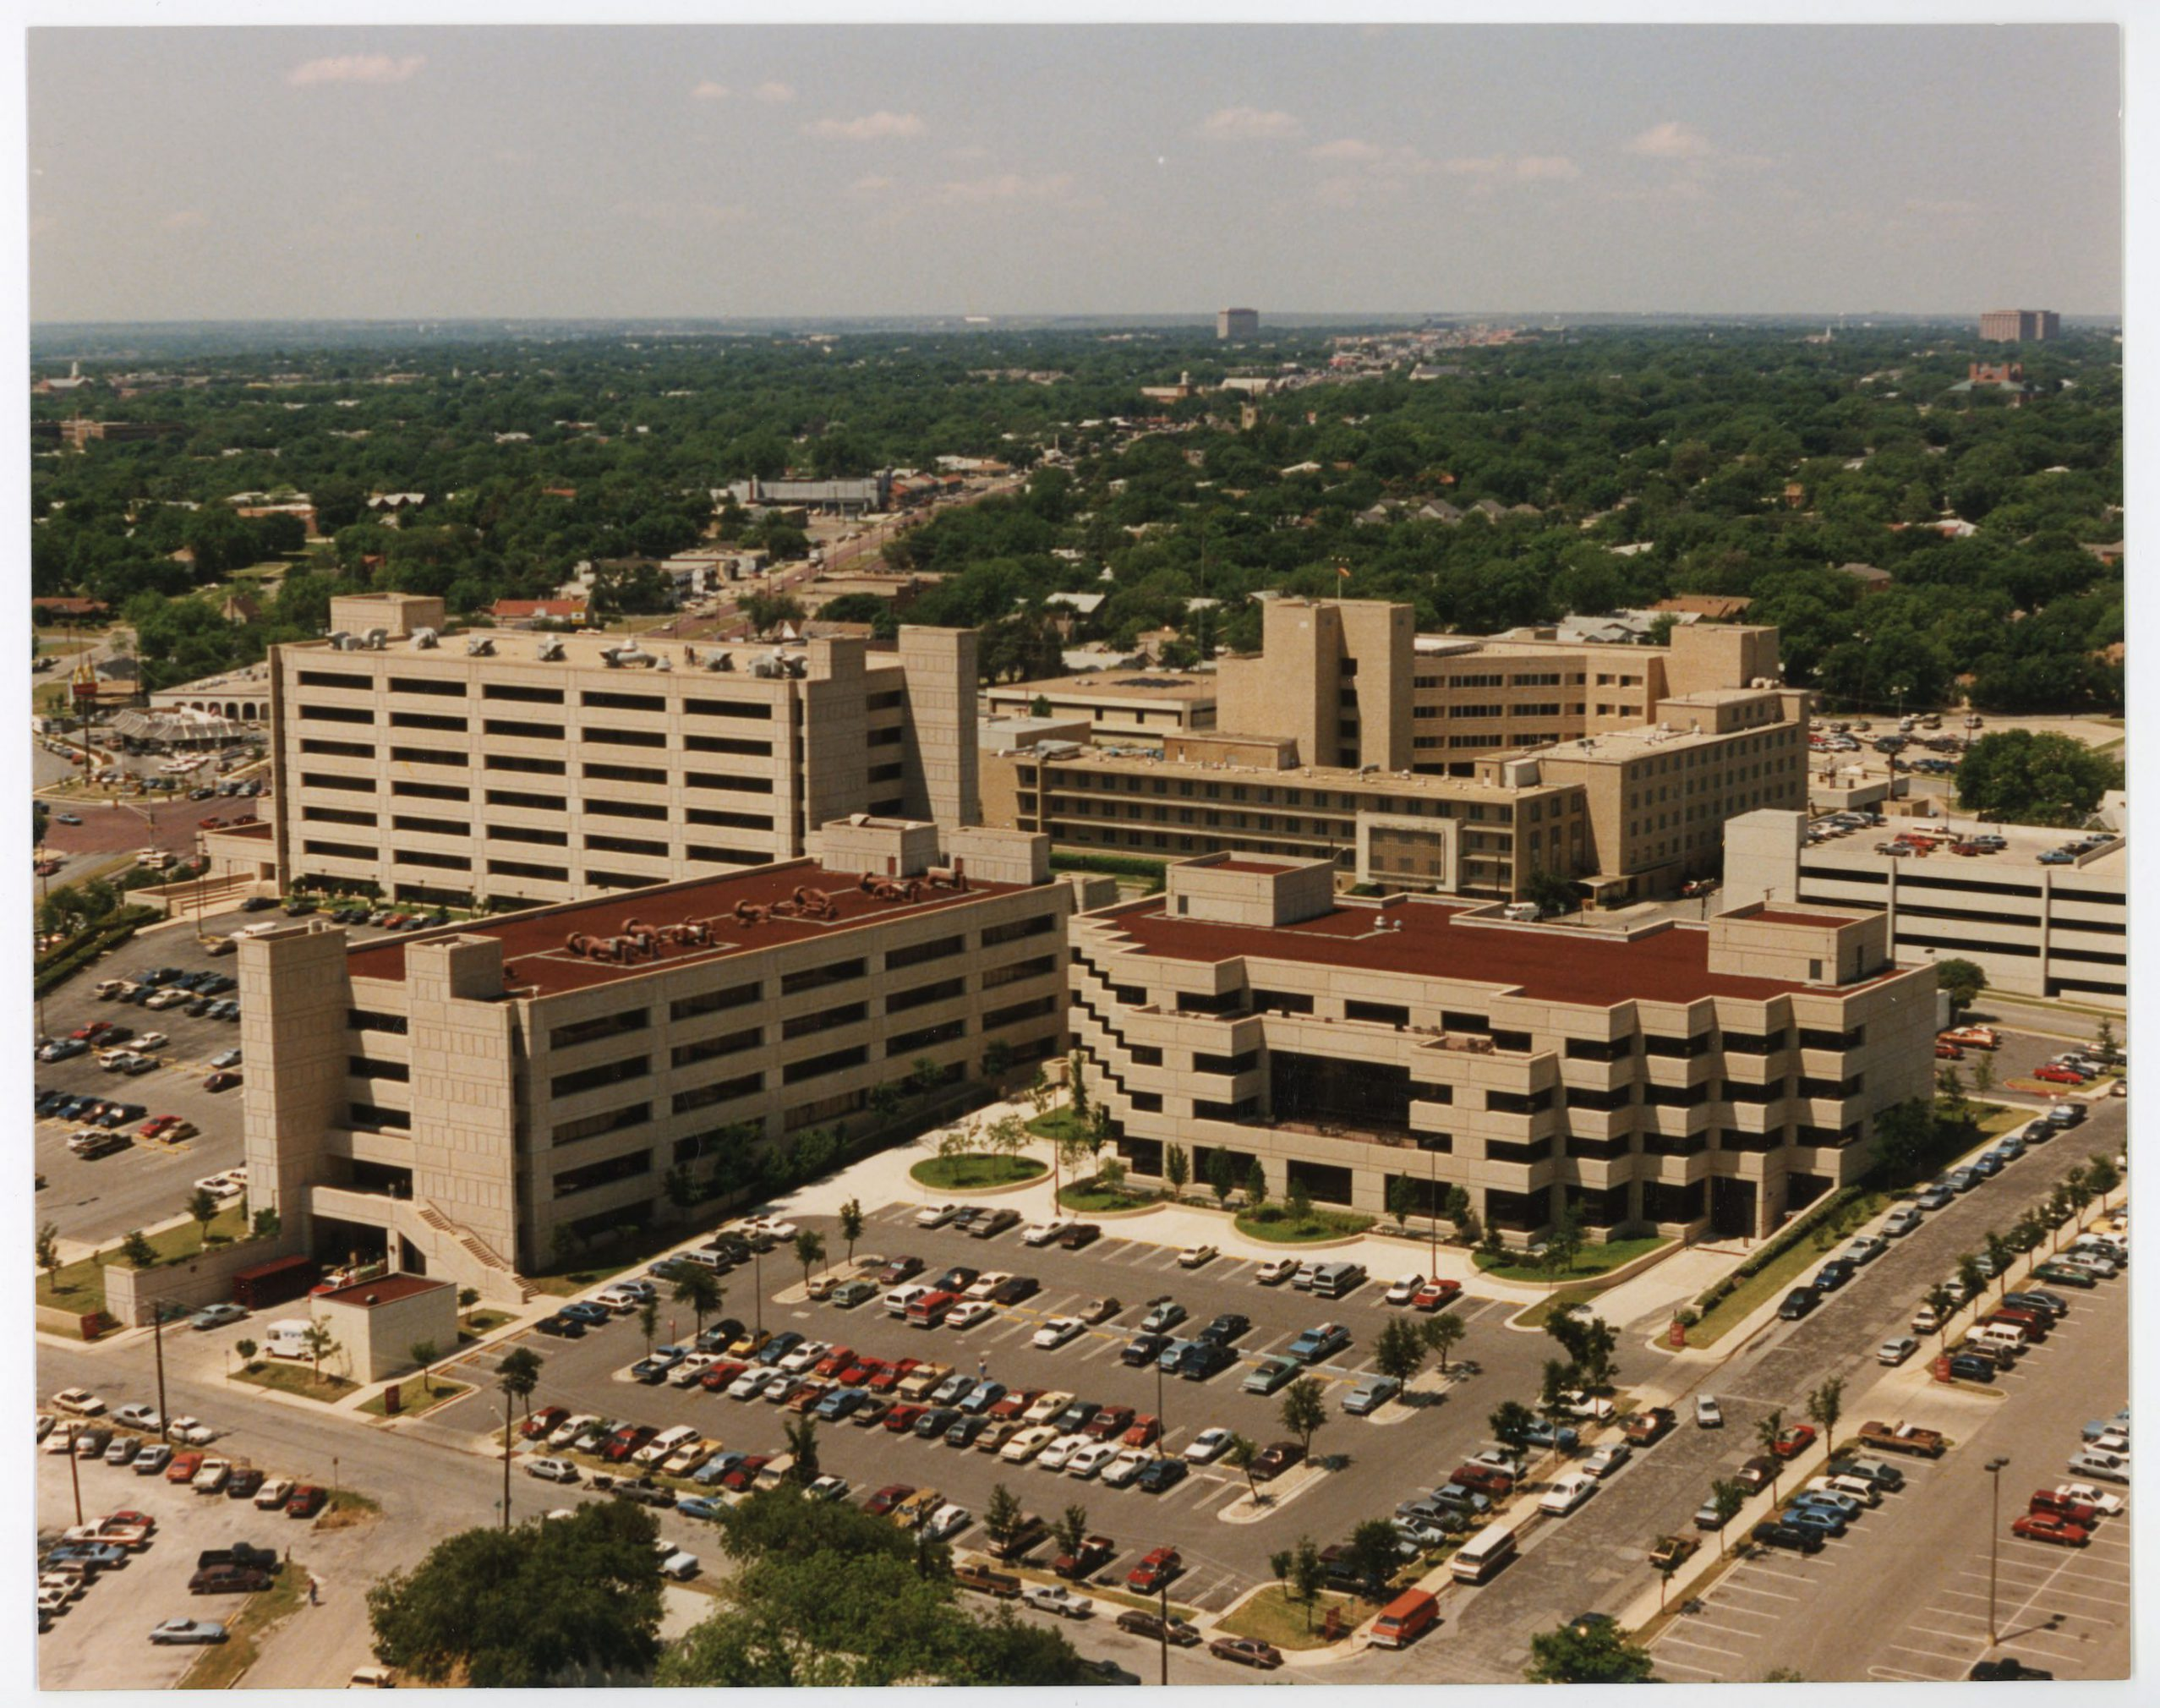 Texas College of Osteopathic Medicinae